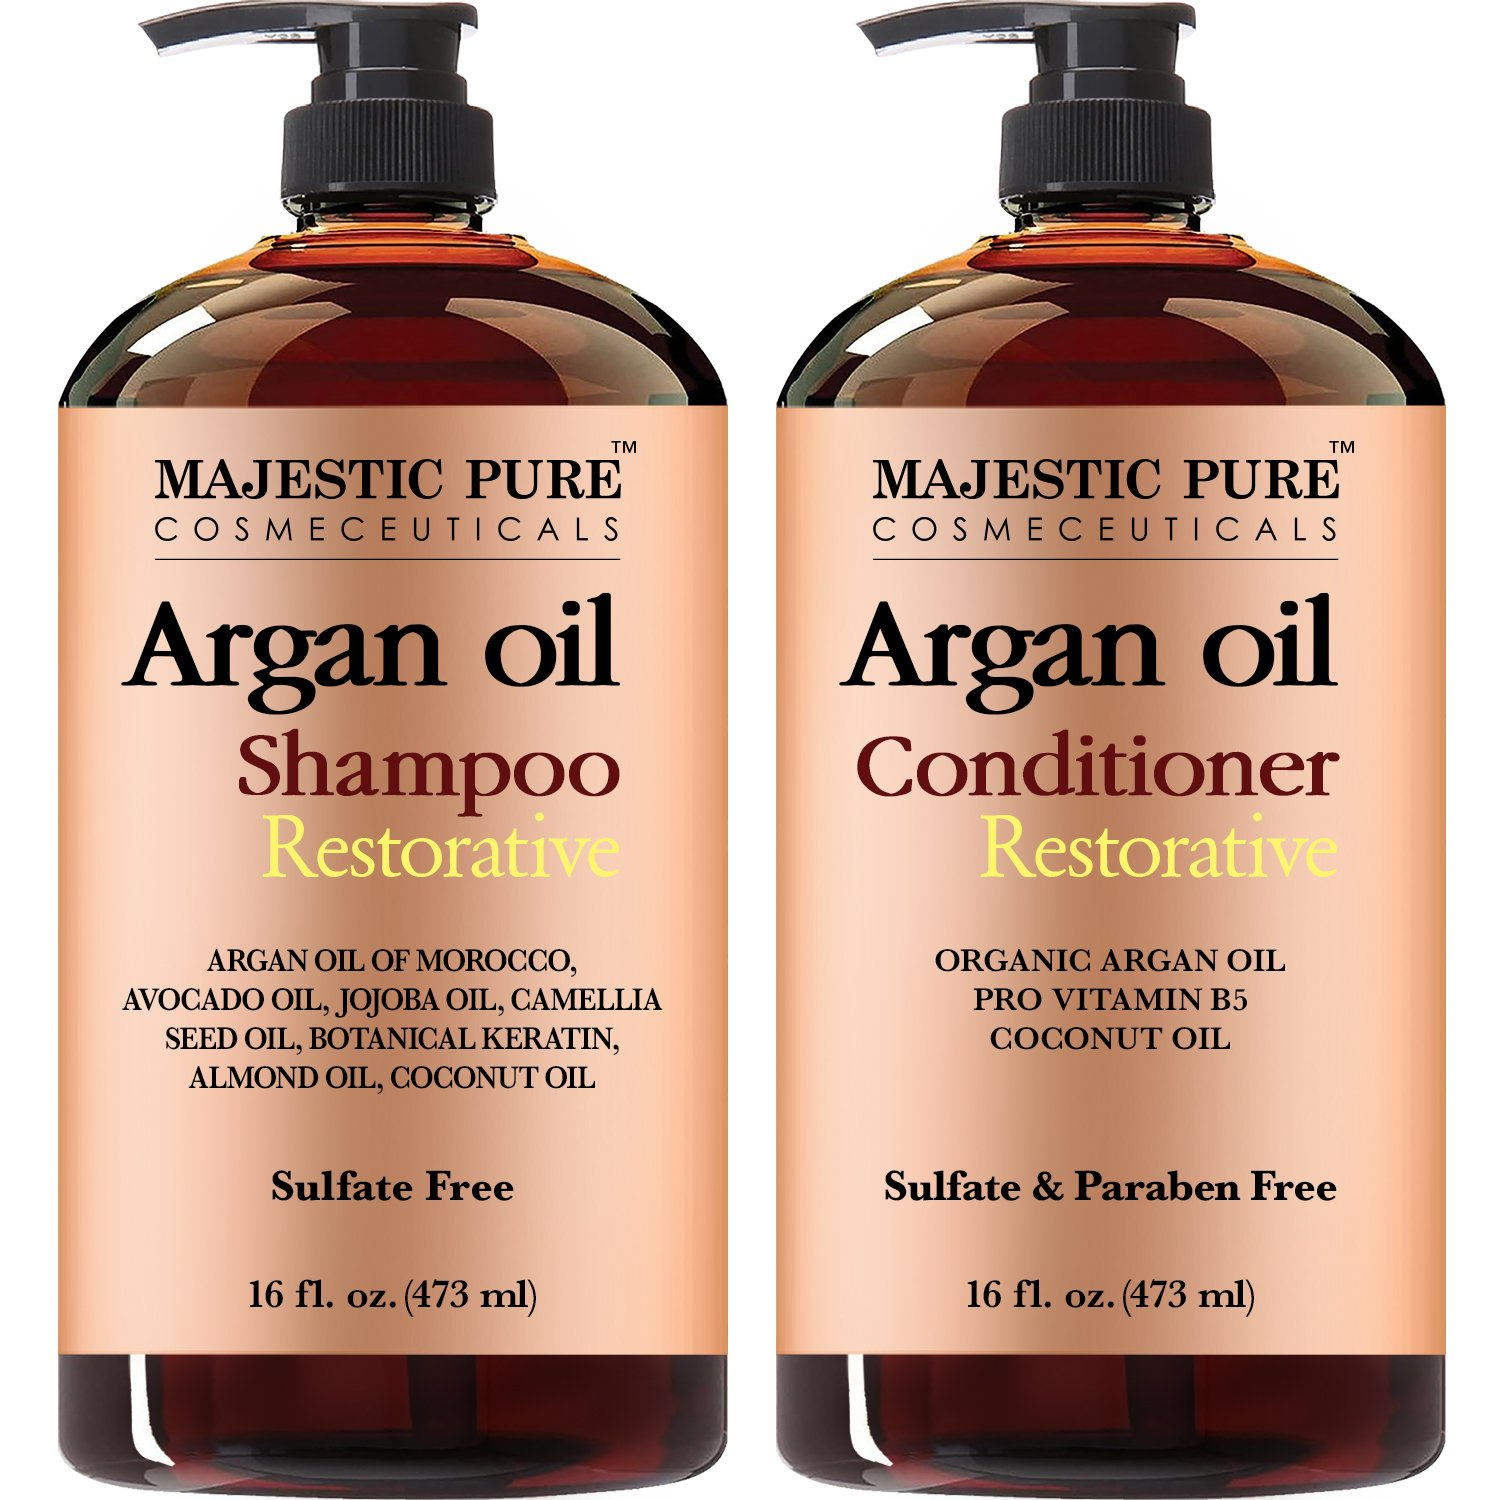 Argan Oil Shampoo and Conditioner, from Majestic Pure, Sulfate Free, Vitamin Enriched, Volumizing & Gentle Hair Restoration Formula for Daily Use, For Men and Women, 16 fl oz each … by Majestic Pure